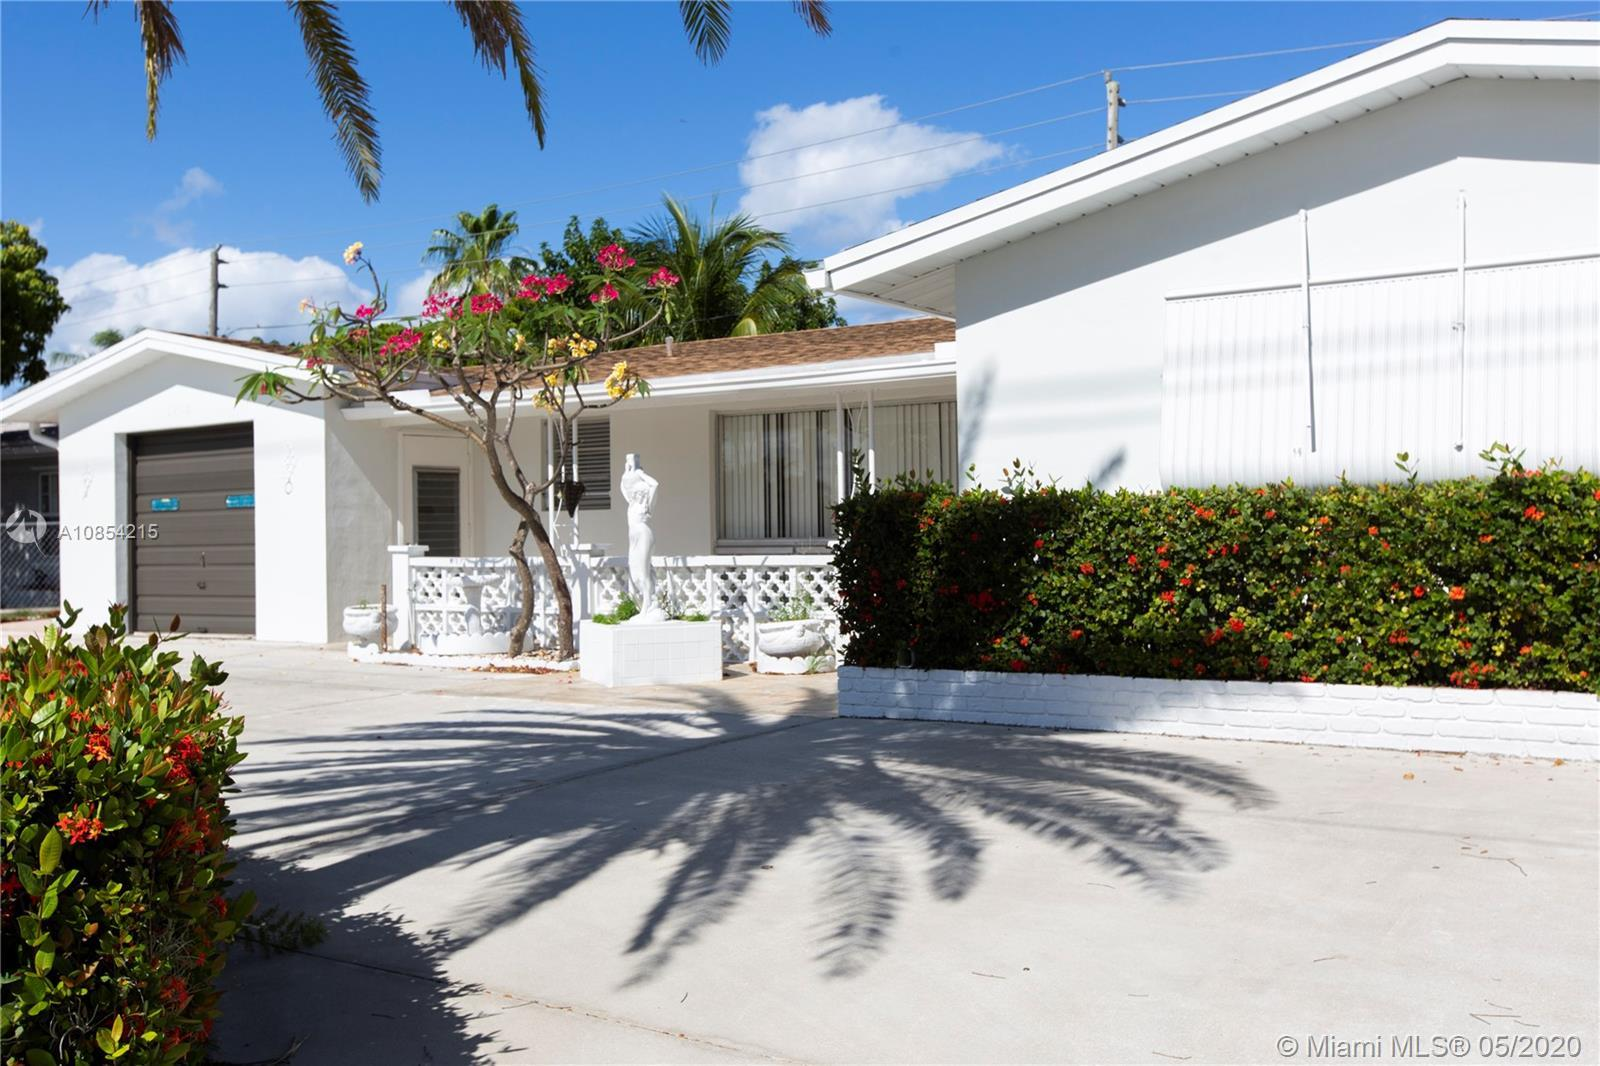 This is truly a MOVE-IN ready home in the highly desirable Knoll/Coral Ridge Isles area! Property se